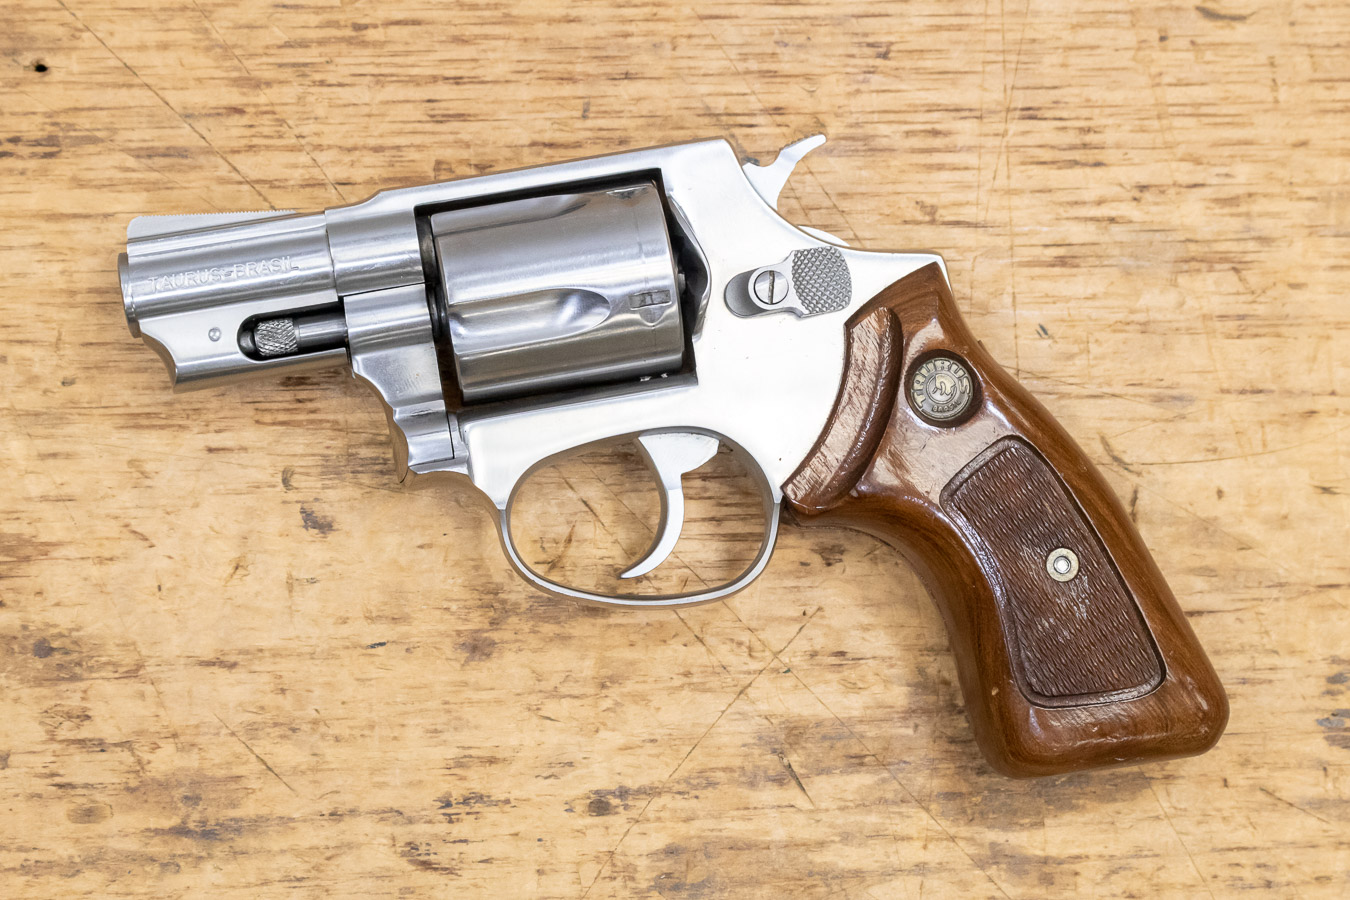 85 38 Special Stainless Used Trade-in Revolver with Wood Grips